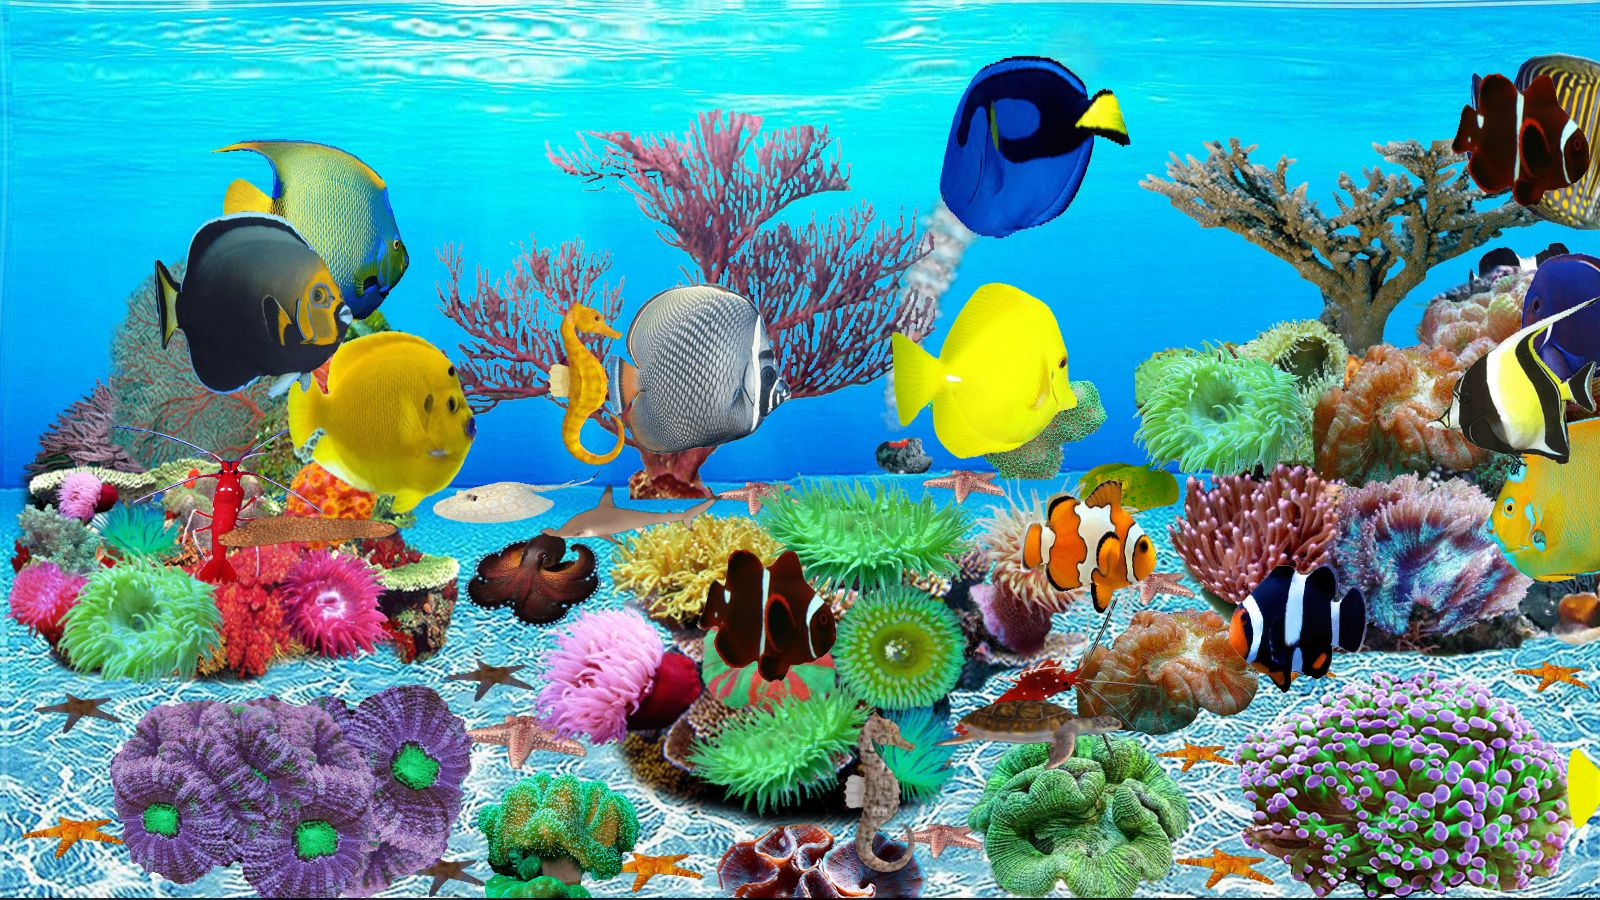 Top 10 best live aquarium fish screensaver best of 2018 for Aquarium fish online